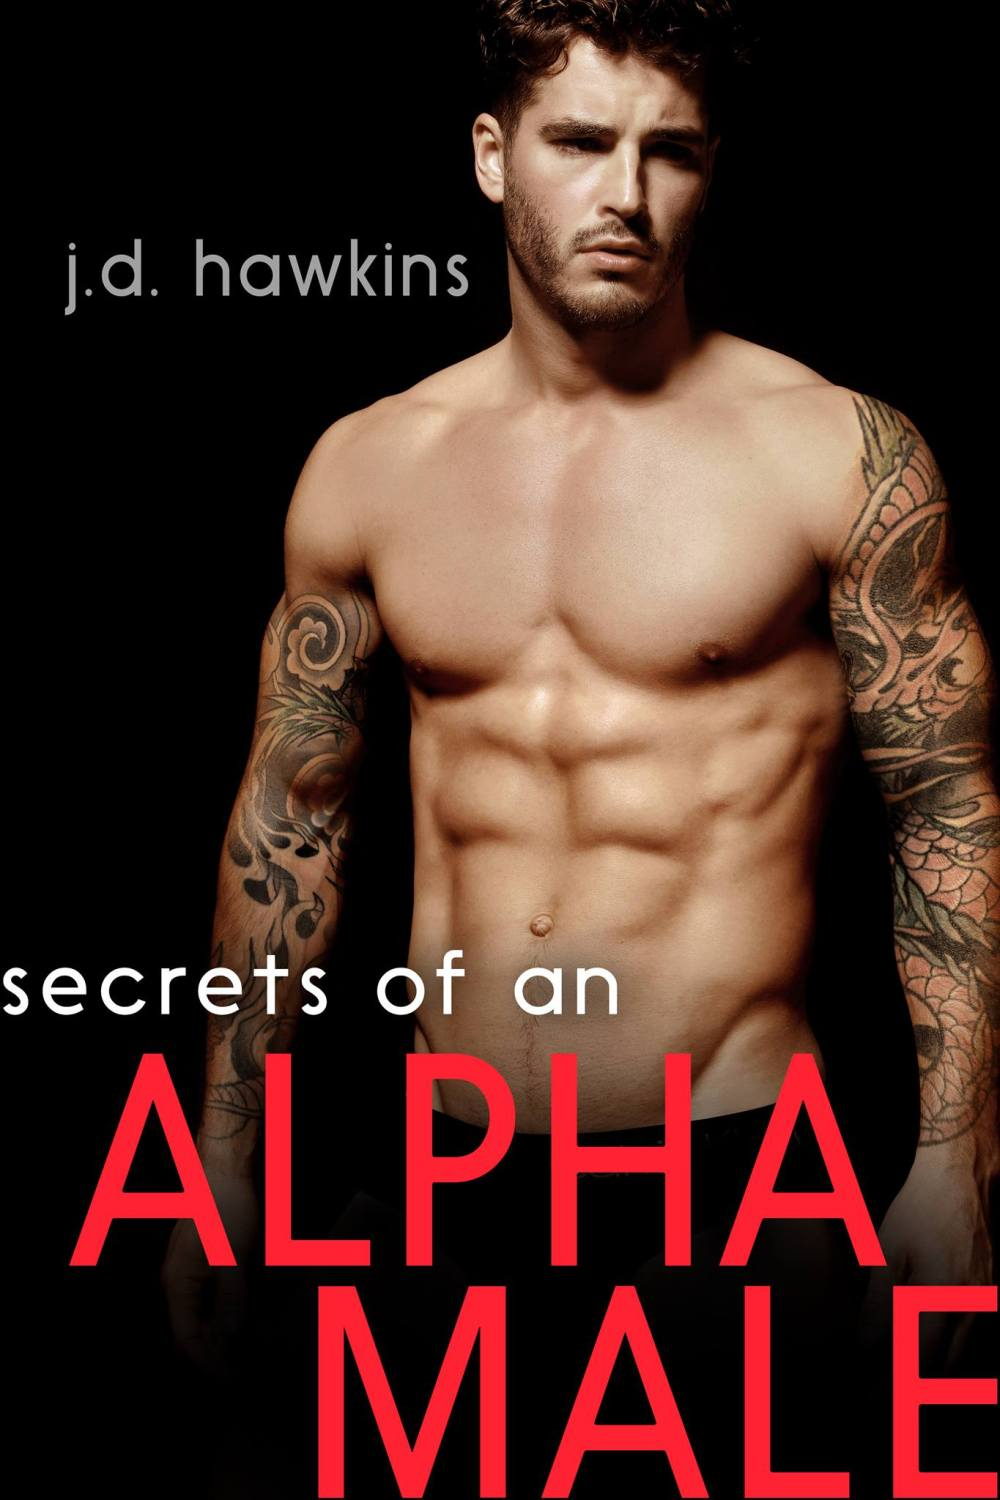 secrets-of-an-alpha-male